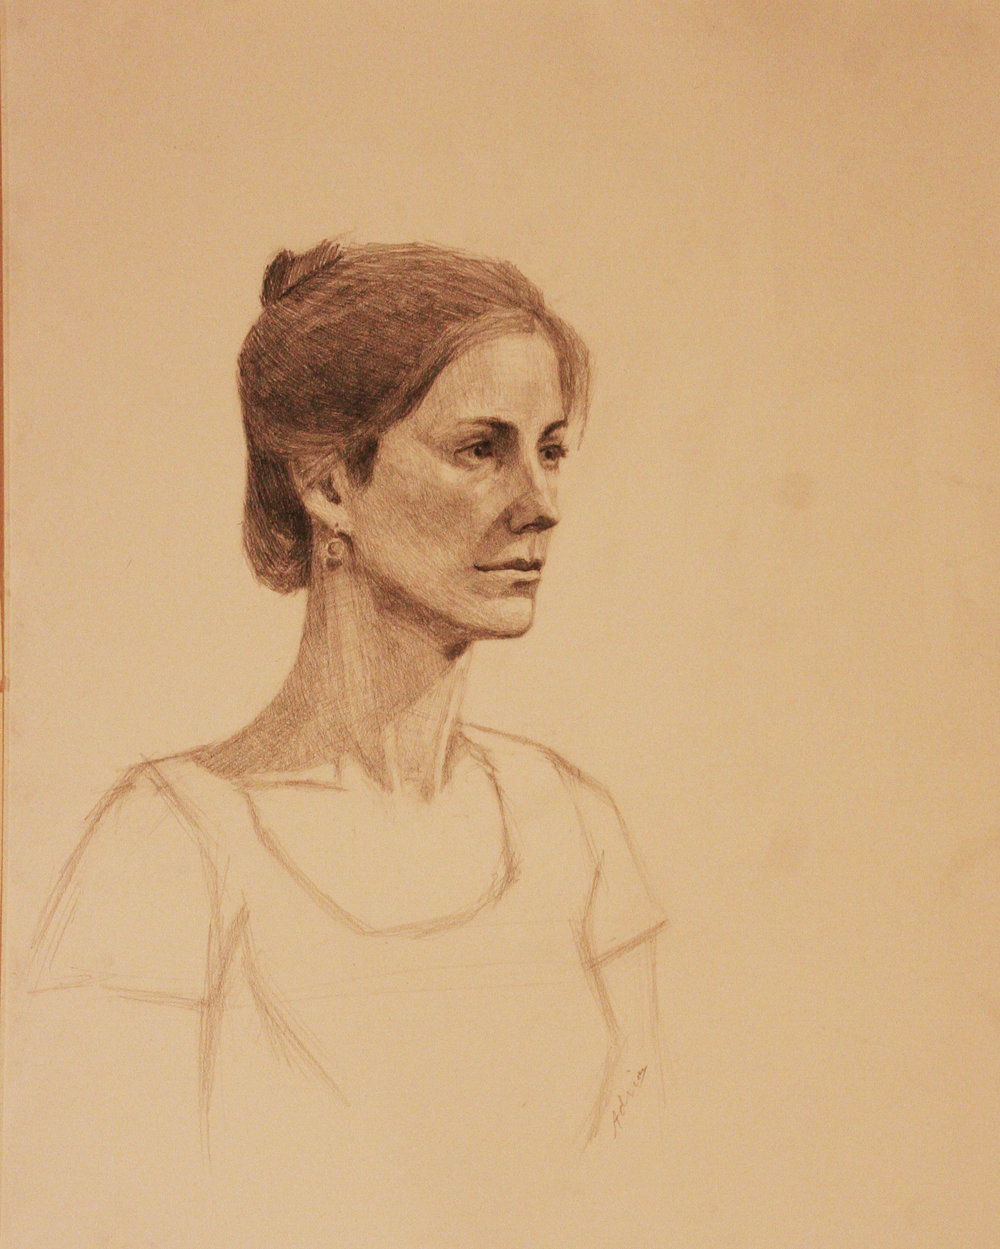 Adrian Eisenhower did this 3-hour drawing of his wife.